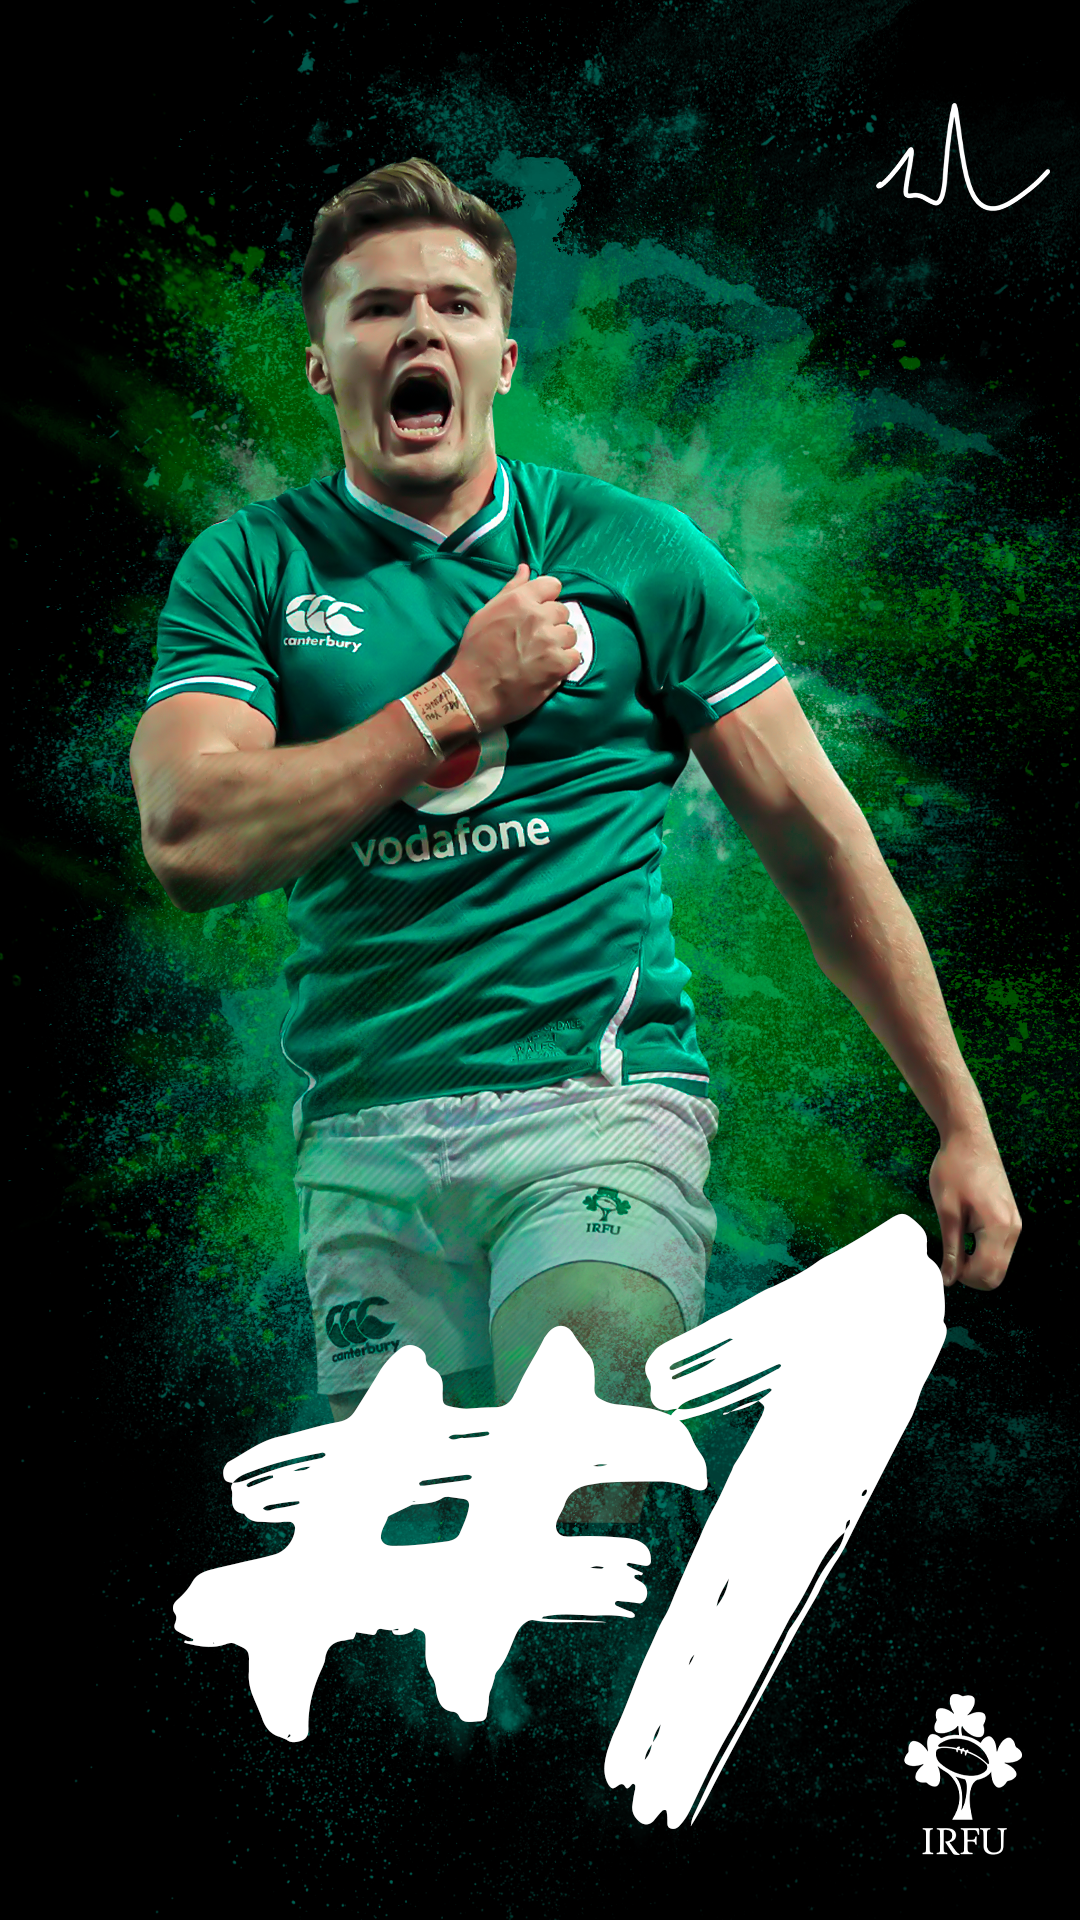 Best Rugby Team In The World Ireland Rugby Rugby Wallpaper Ireland Rugby Team